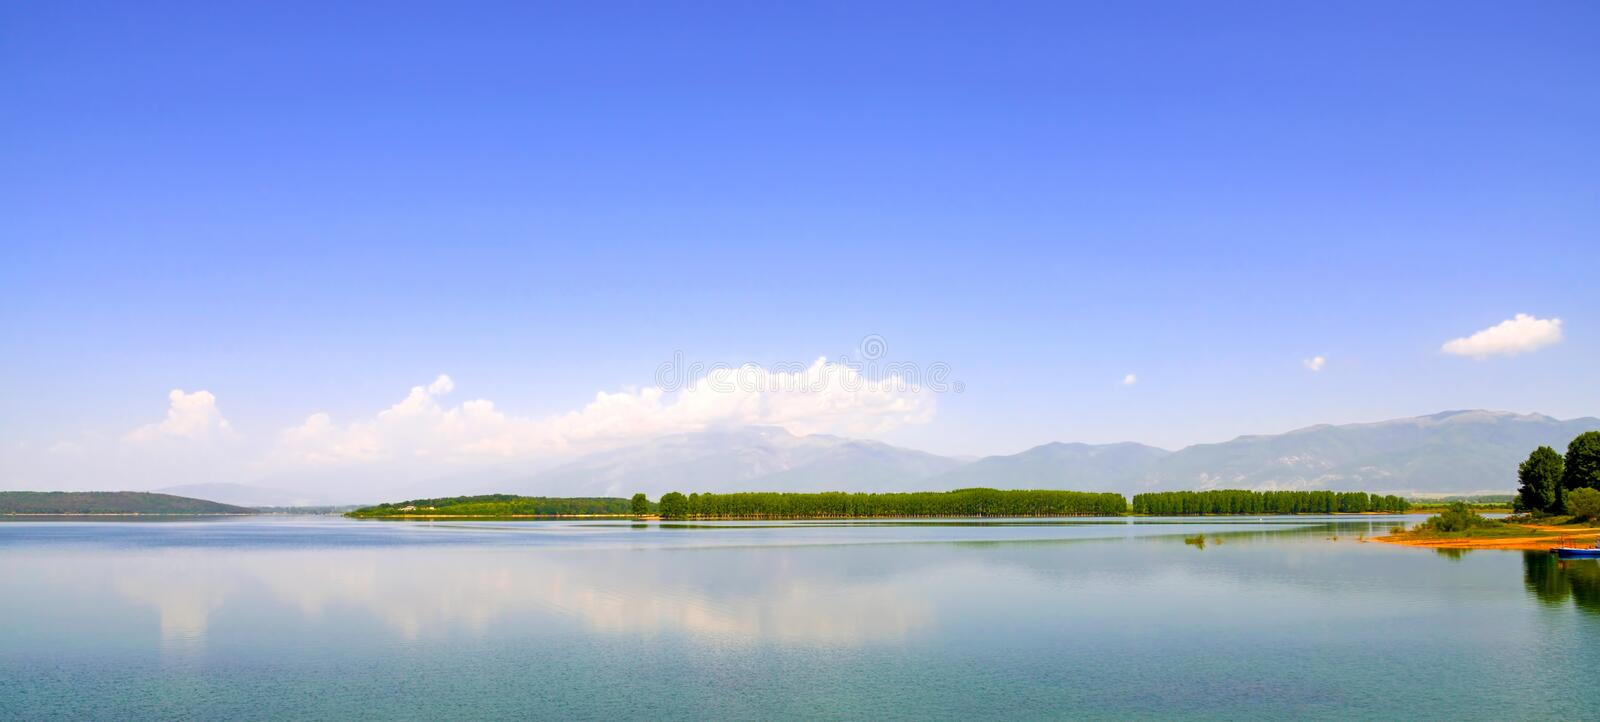 Landscape with the island being reflected in water royalty free stock photo